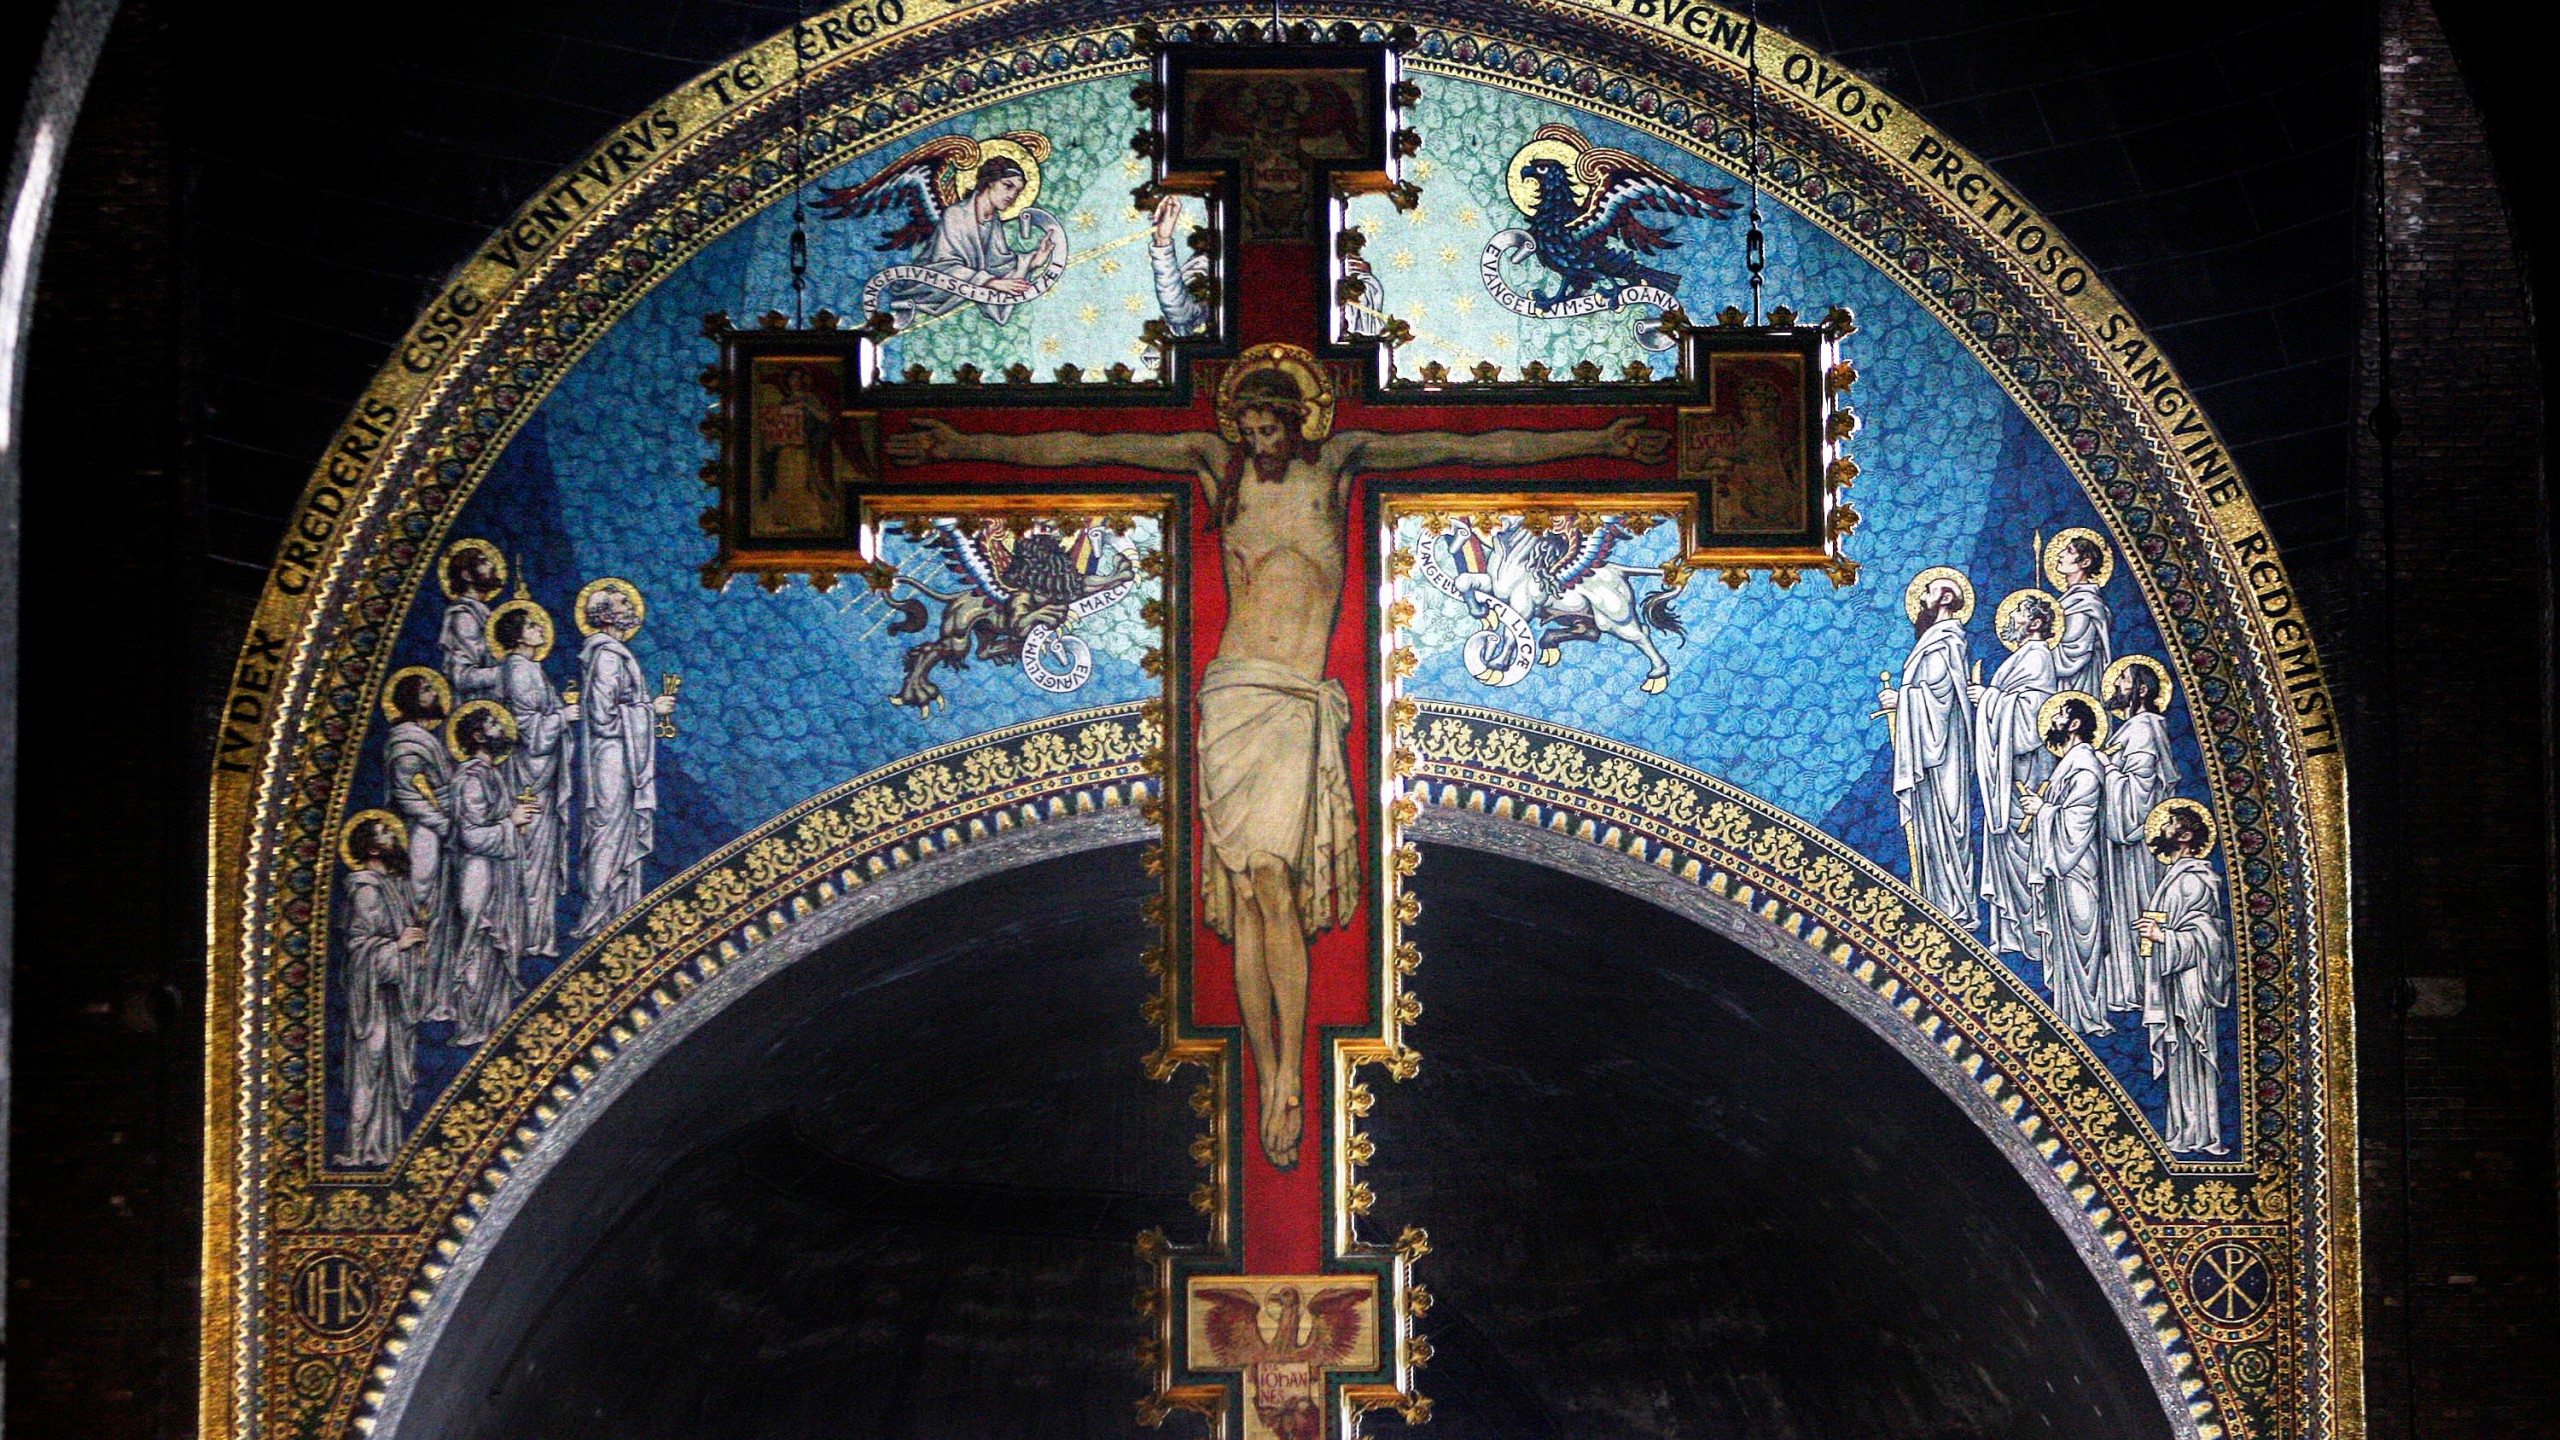 A cross with a painting of Jesus Christ hangs over the alter at Westminster Cathedral on February 21, 2007, in London. (Peter Macdiarmid/Getty Images)